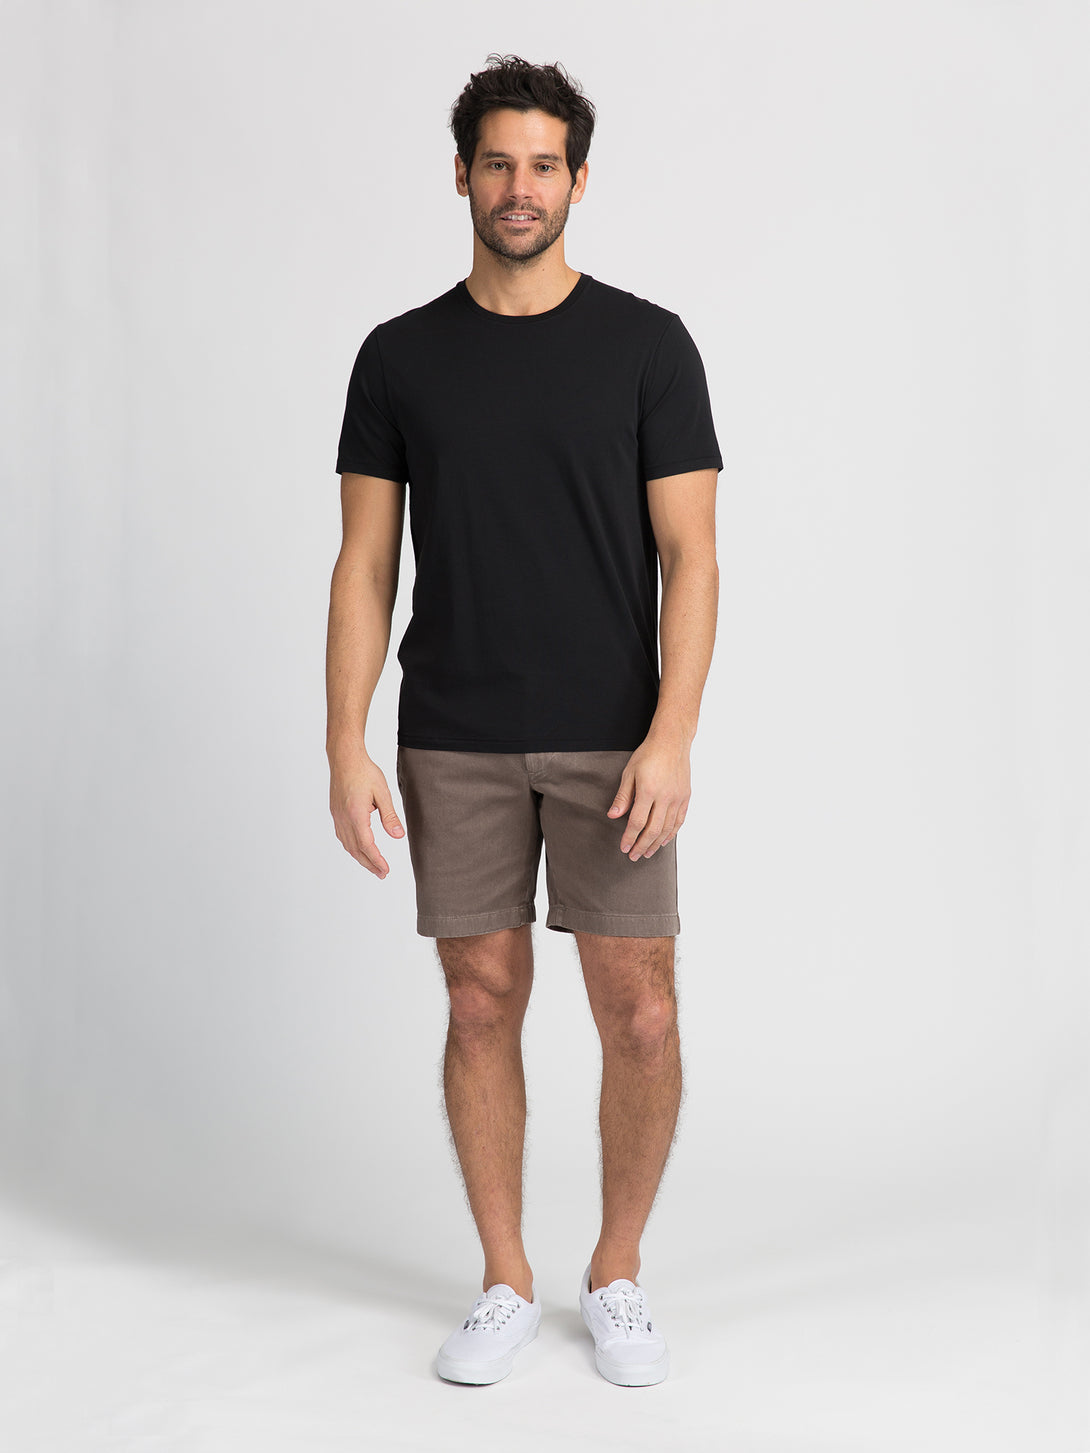 ons garage men's shorts LIGHT BROWN